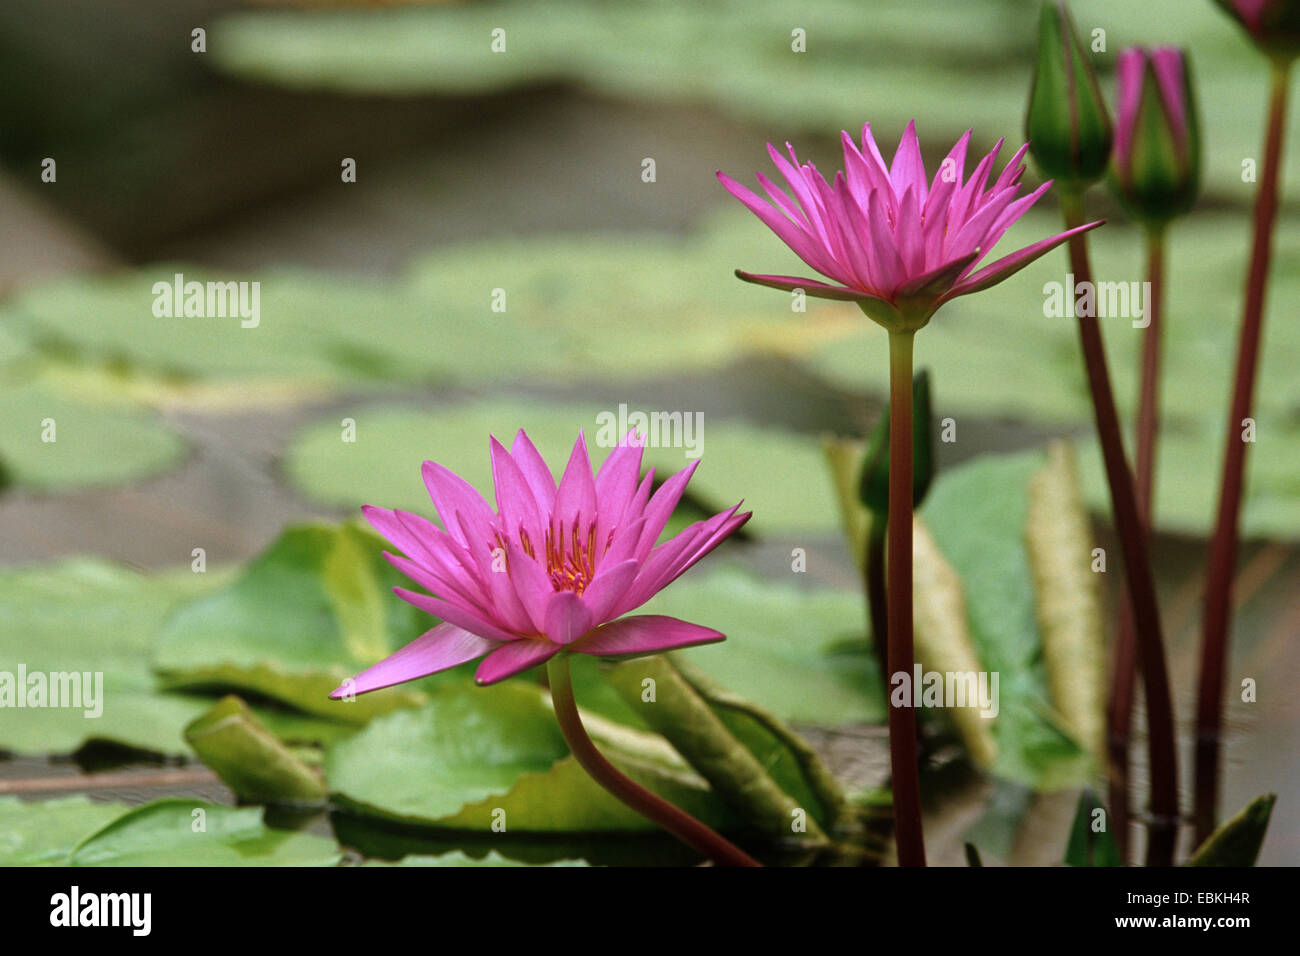 water lily, pond lily (Nymphaea 'Director George T. Moore', Nymphaea Director George T. Moore), Director - Stock Image